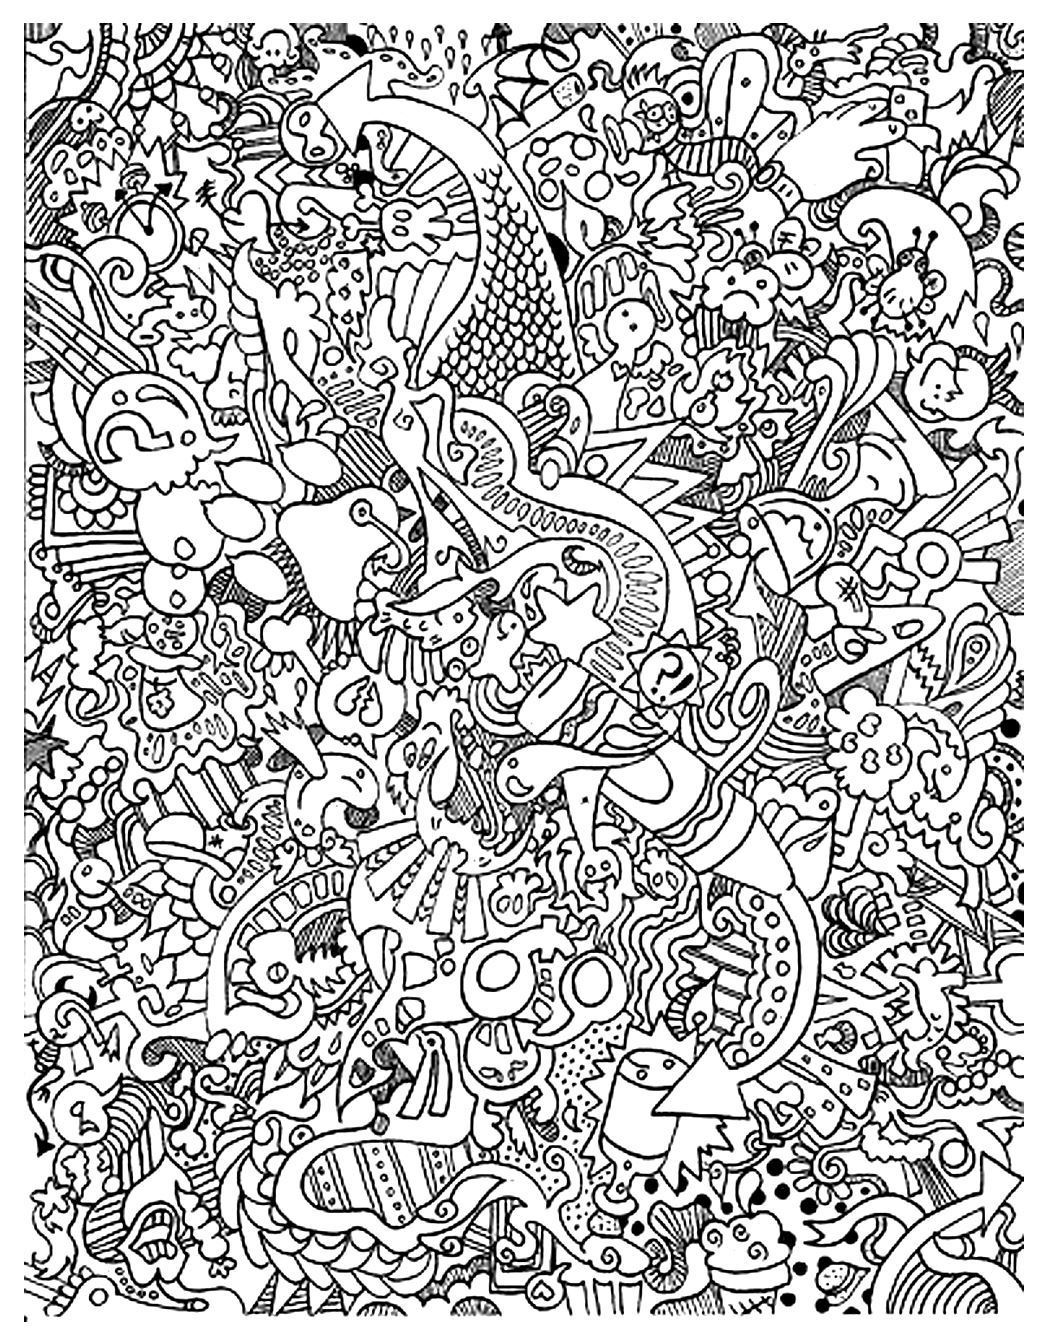 Doodling doodle art 6 doodles coloriages difficiles - Coloriage adulte difficile ...